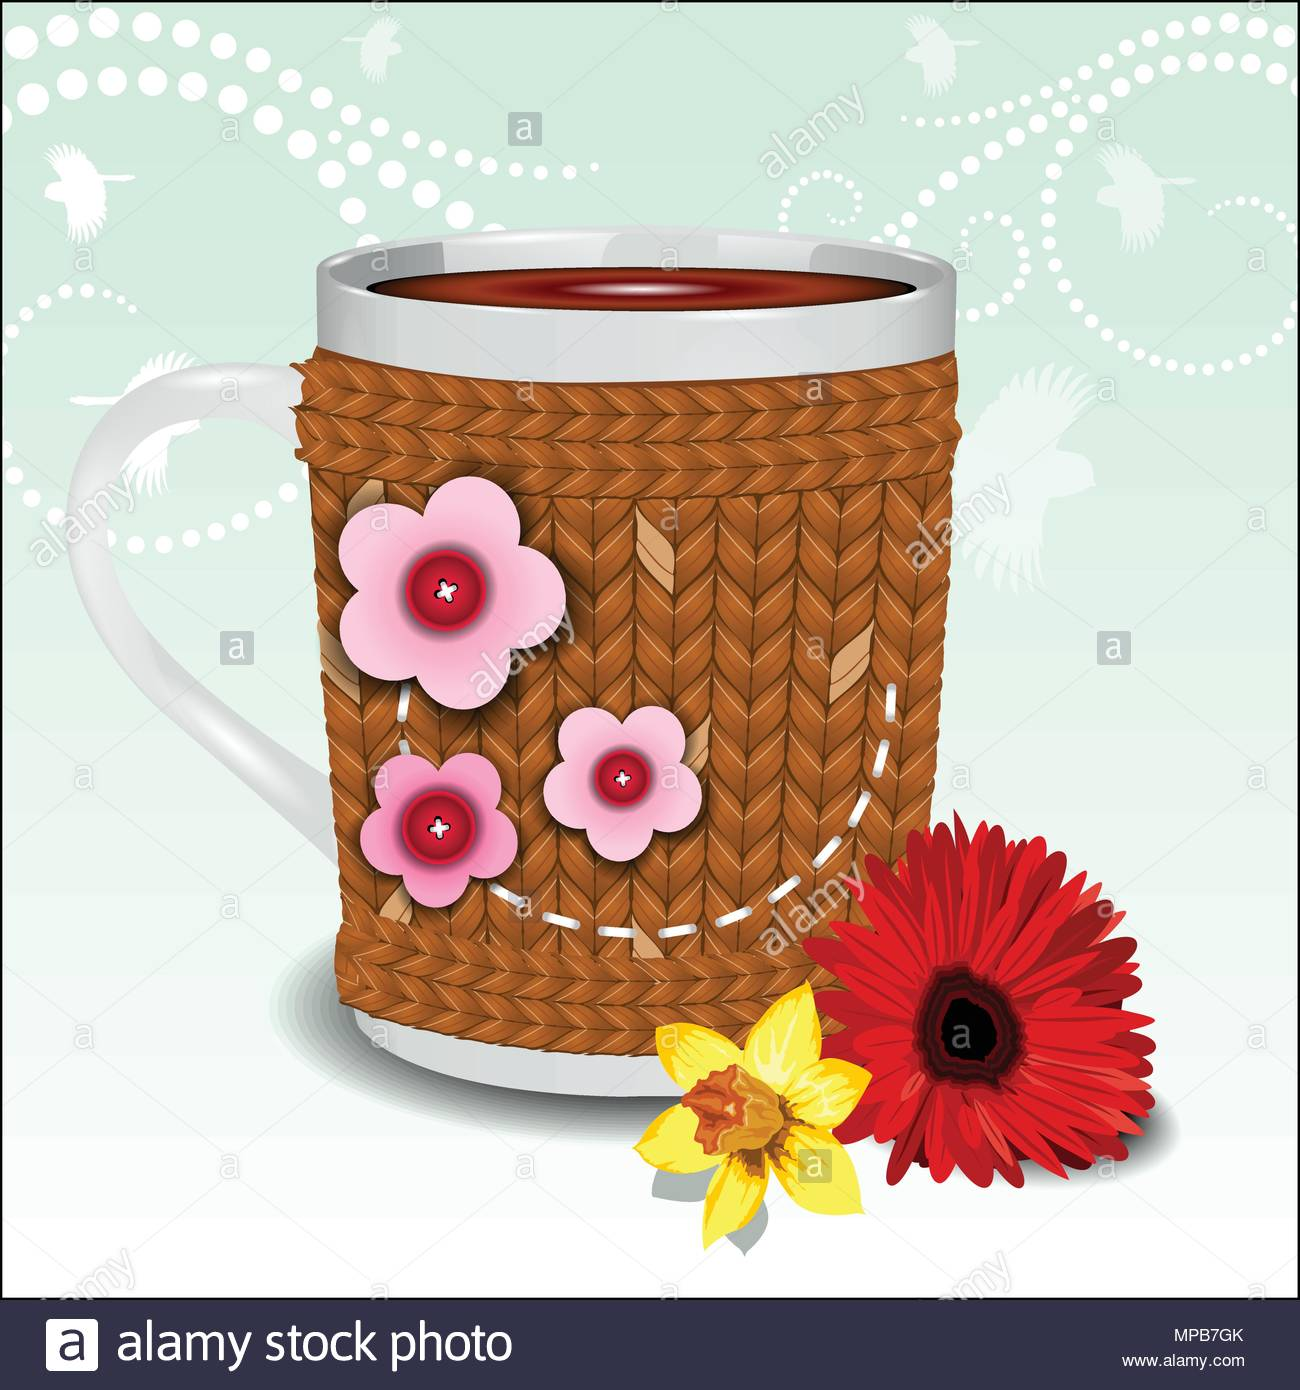 Cute cup in a sweater decorated with flowers - Stock Vector